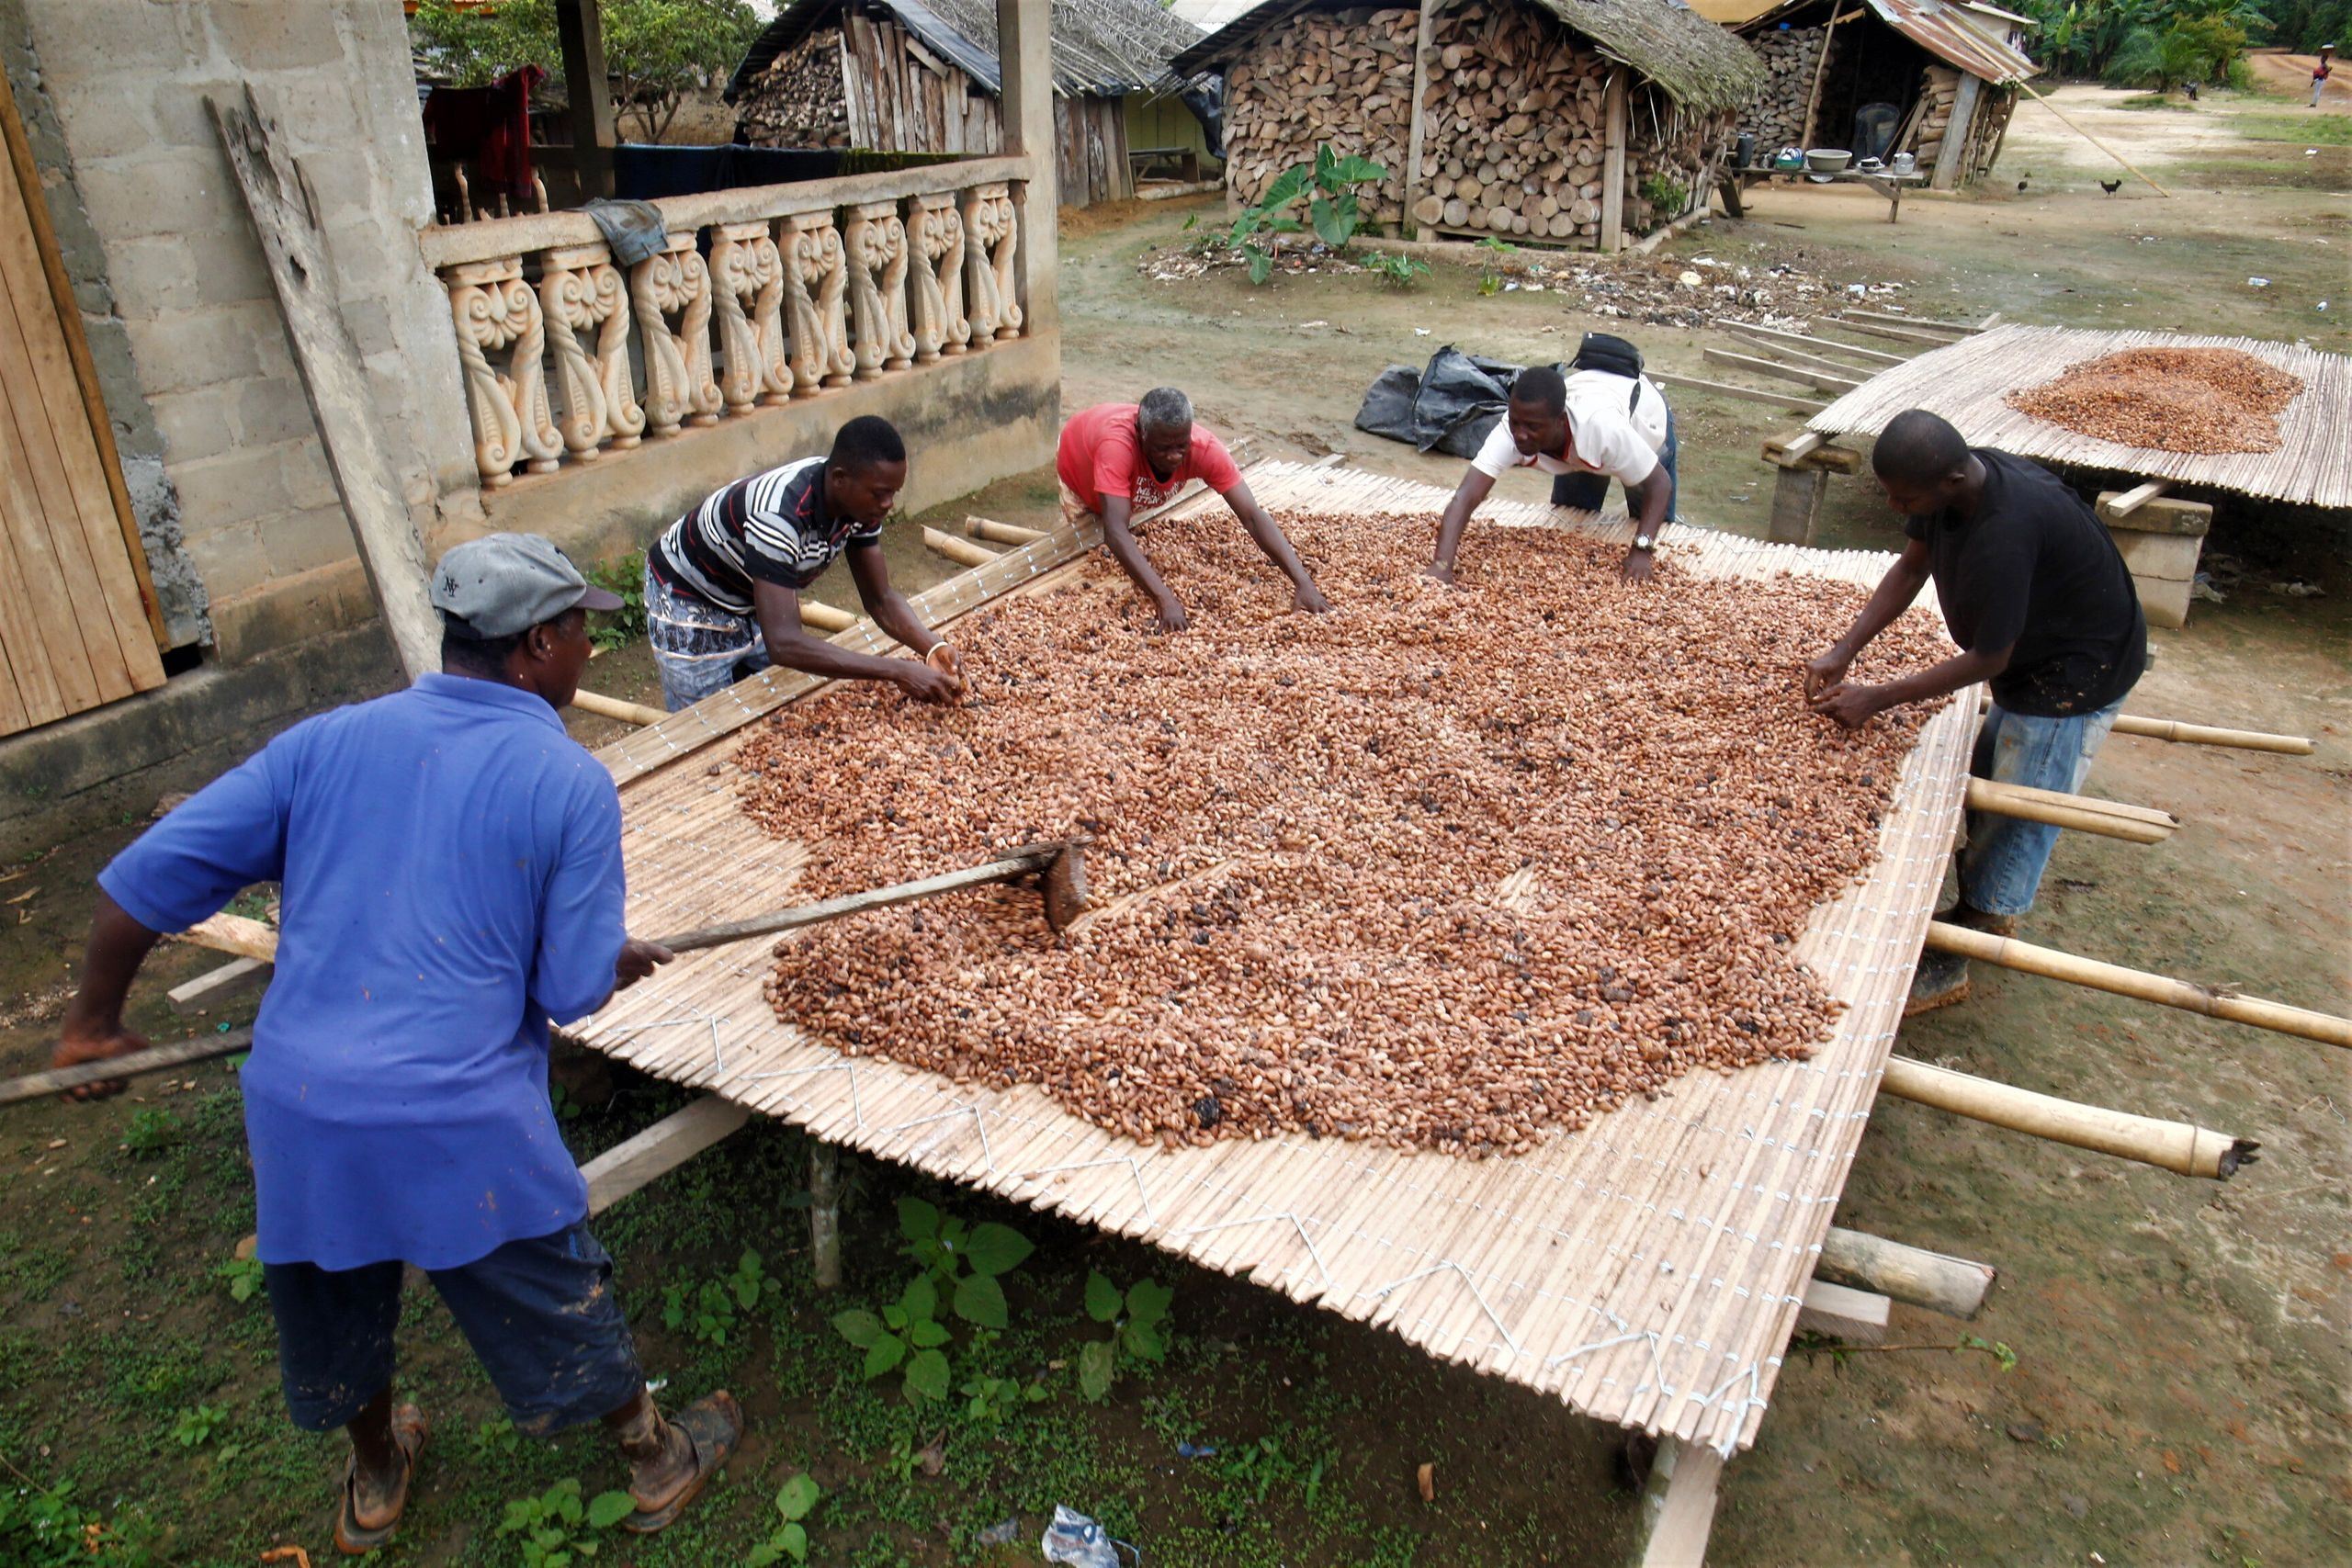 Cocoa farmers dry cocoa beans in the village of Andou M'batto in Alepe, Ivory Coast.